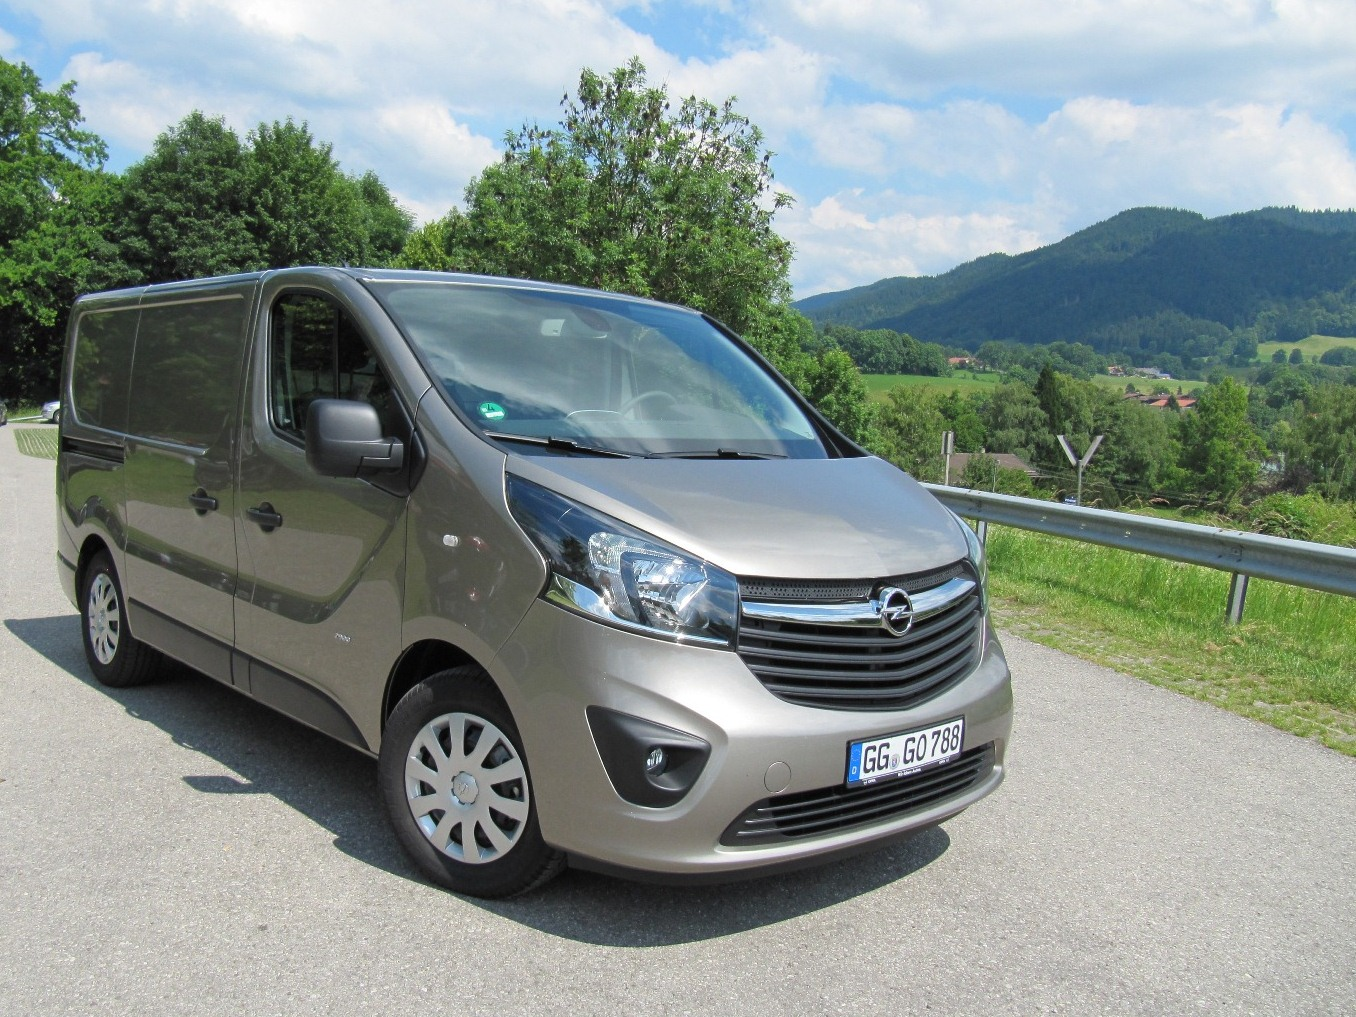 2015 opel vivaro specs and price 2017 2018 best cars reviews. Black Bedroom Furniture Sets. Home Design Ideas